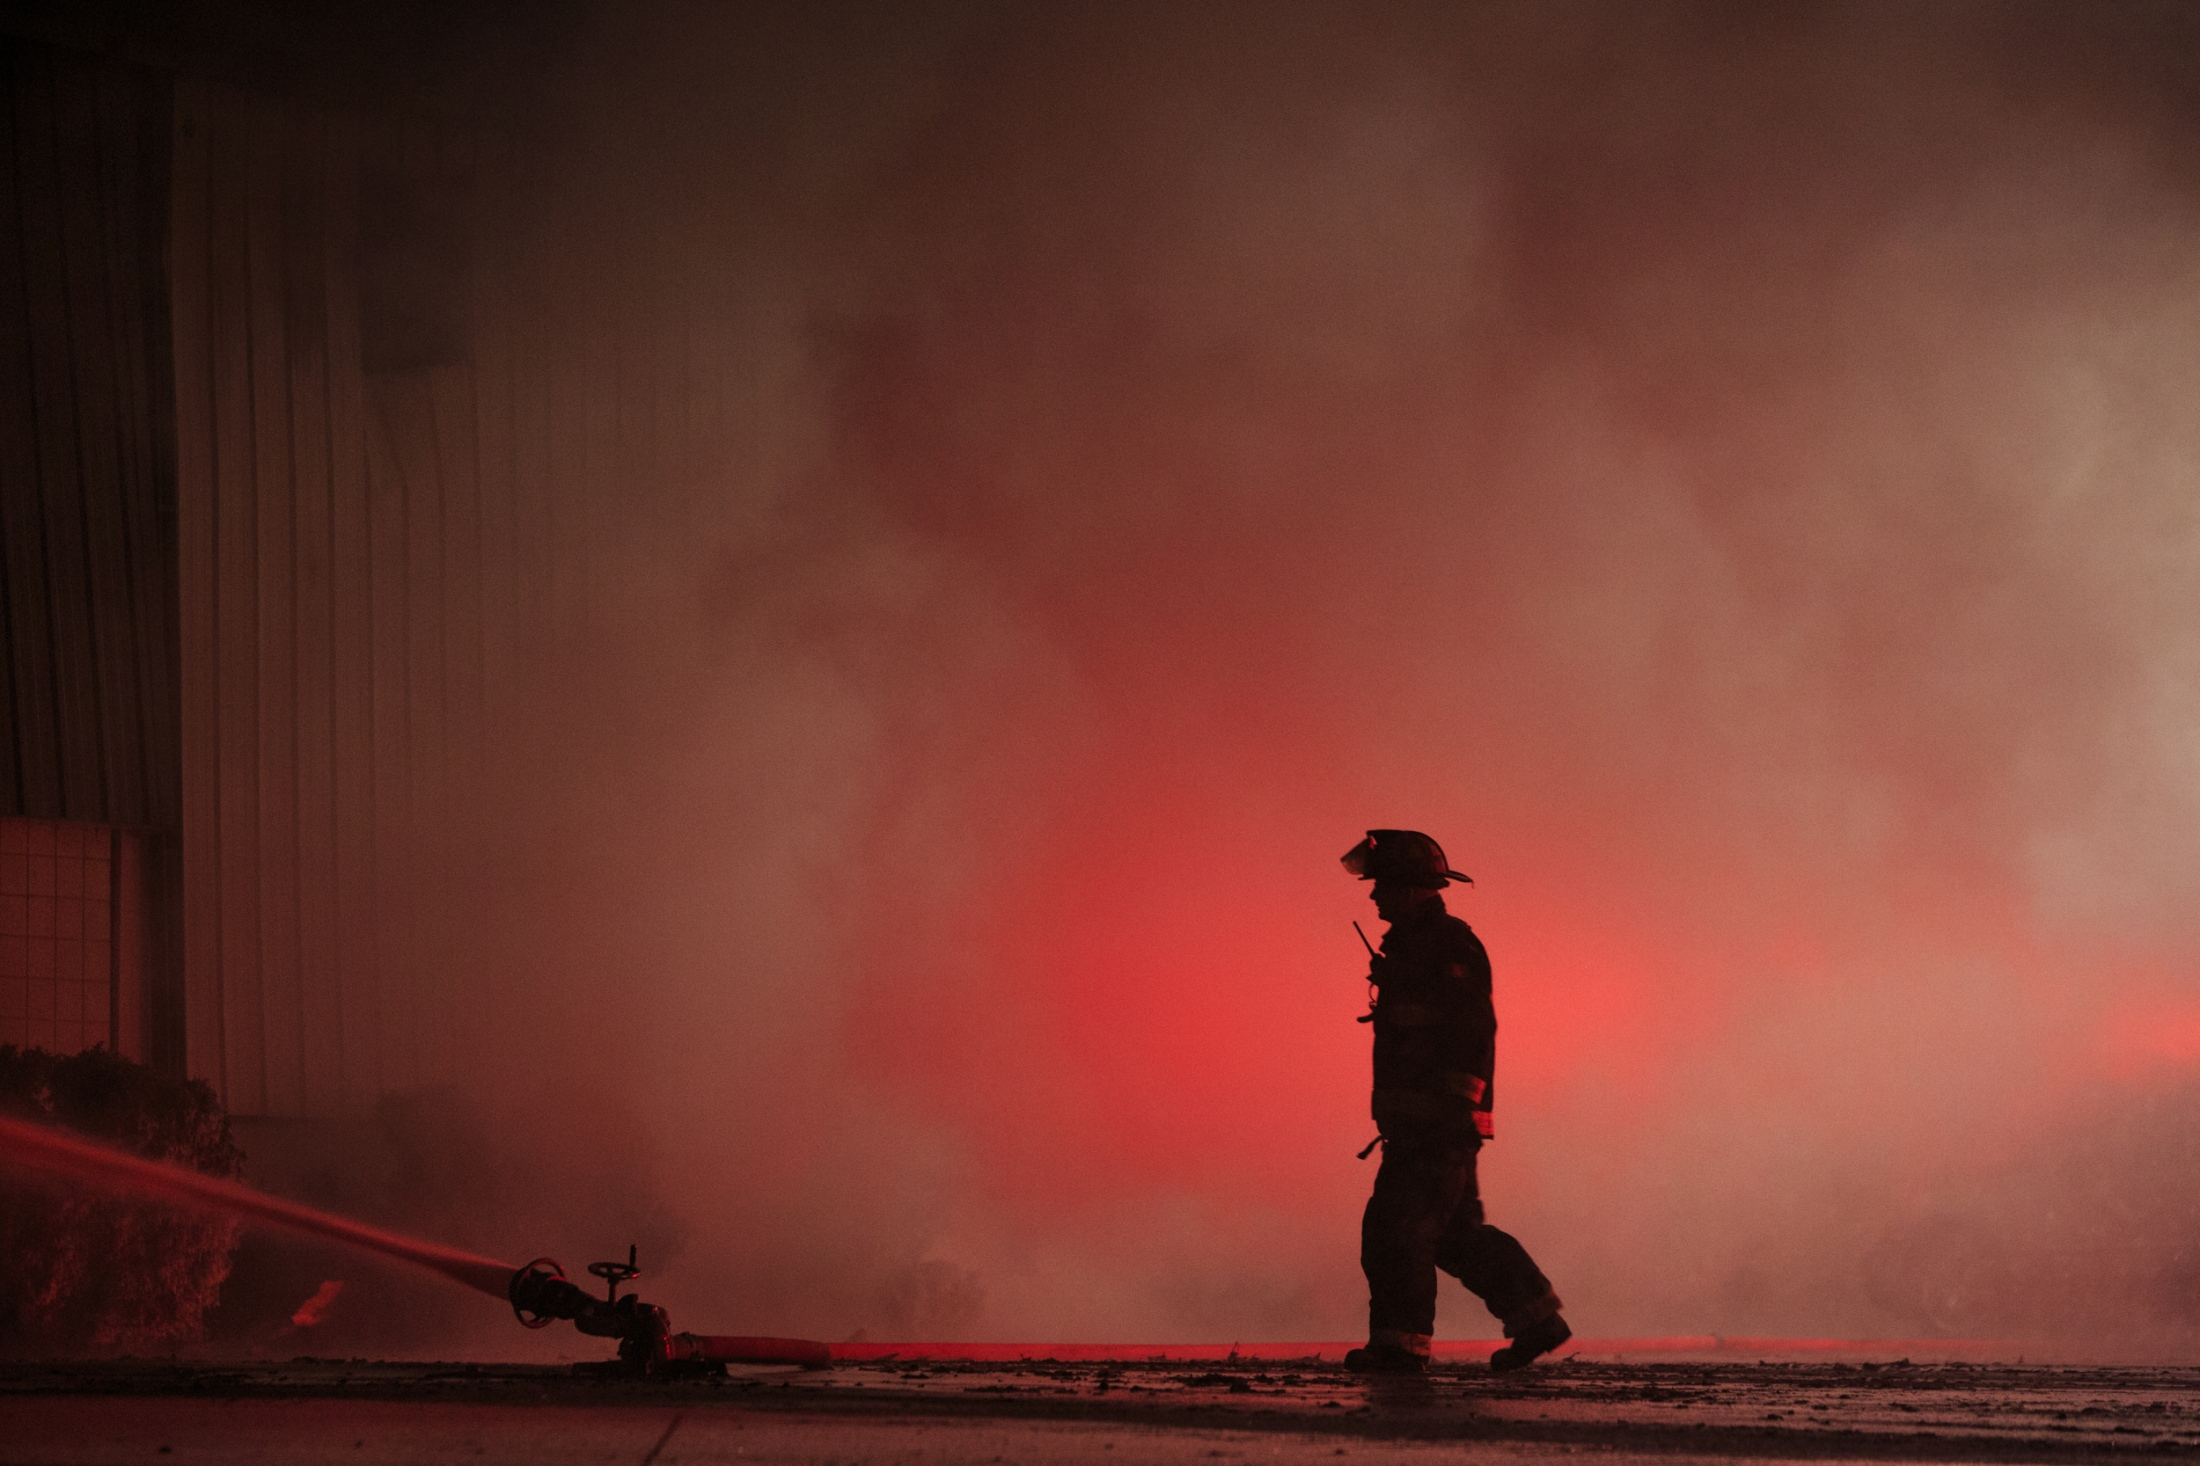 Multiple fire departments battle a large fire that broke out over night at Muskegon Casting Corporation at 2325 S. Sheridan Dr. in Muskegon on March, 15, 2017. Muskegon public safety director Jeffrey Lewis said an estimated 40 employees evacuated safely from the fire, which is believed to be caused by an equipment malfunction that created a spark to combustibles in the foundry, which is full of oils and metallurgic dust.